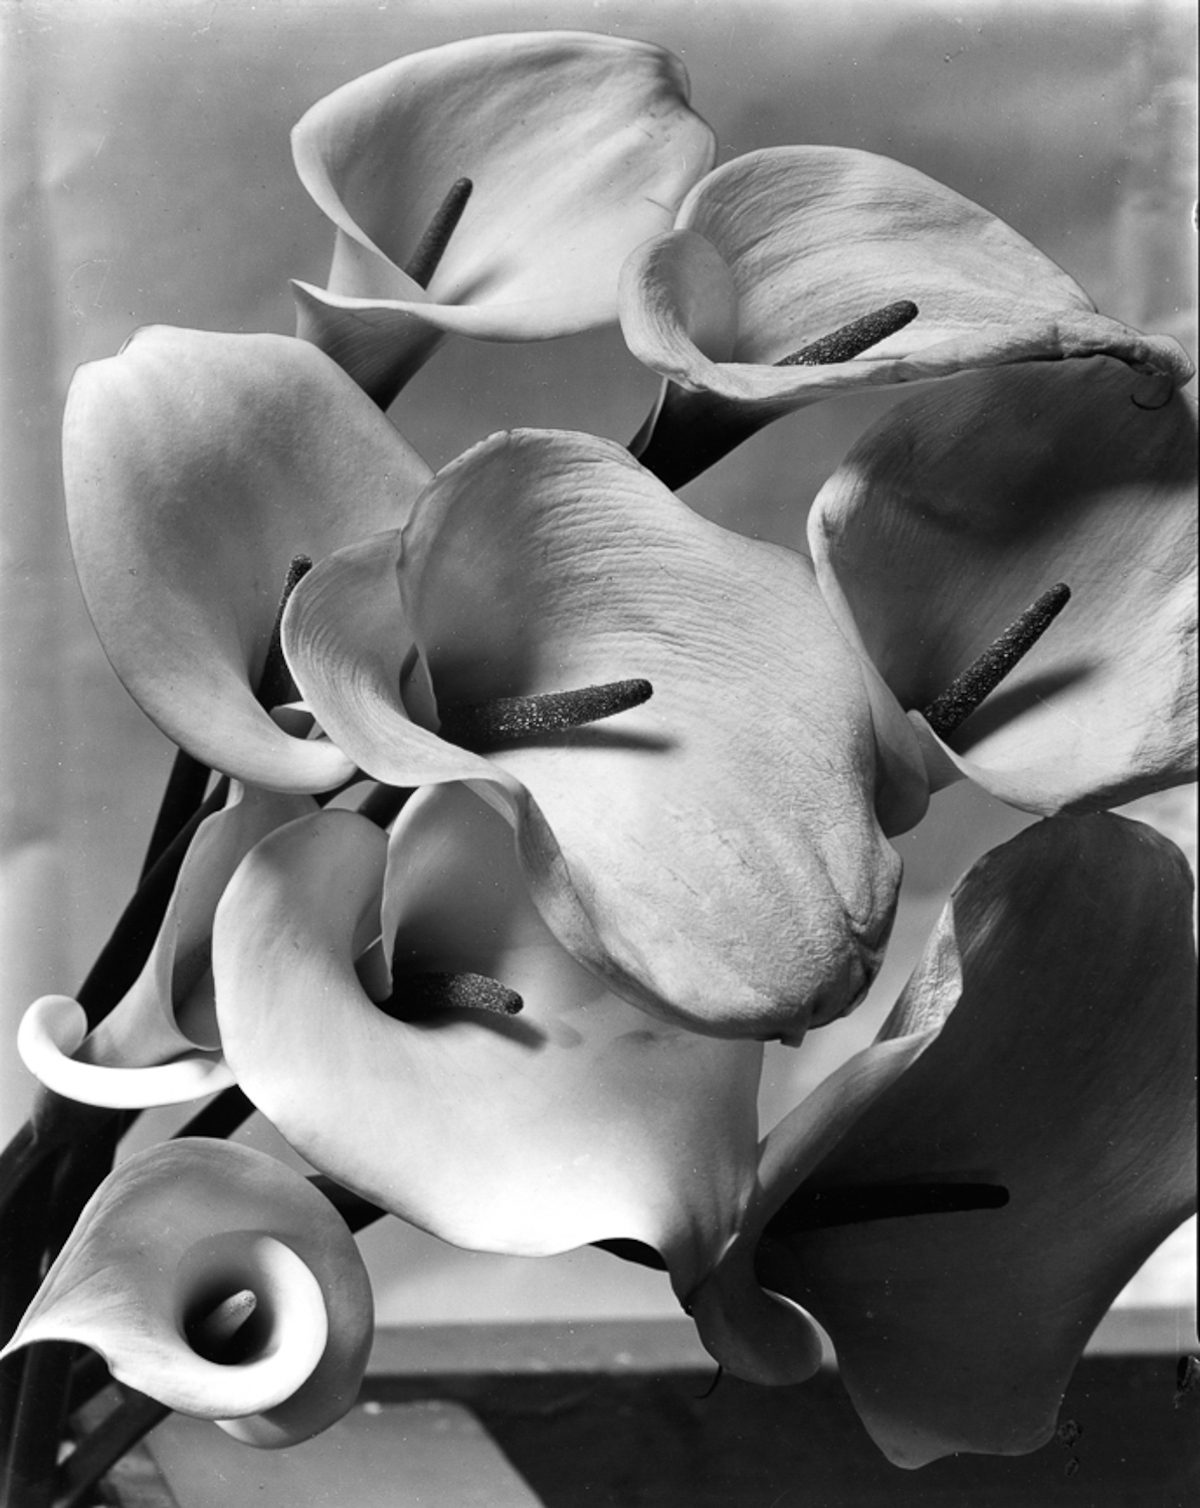 Imogen Cunningham Sublime Close-Up Botanical Photos from the 1920s and 1930s